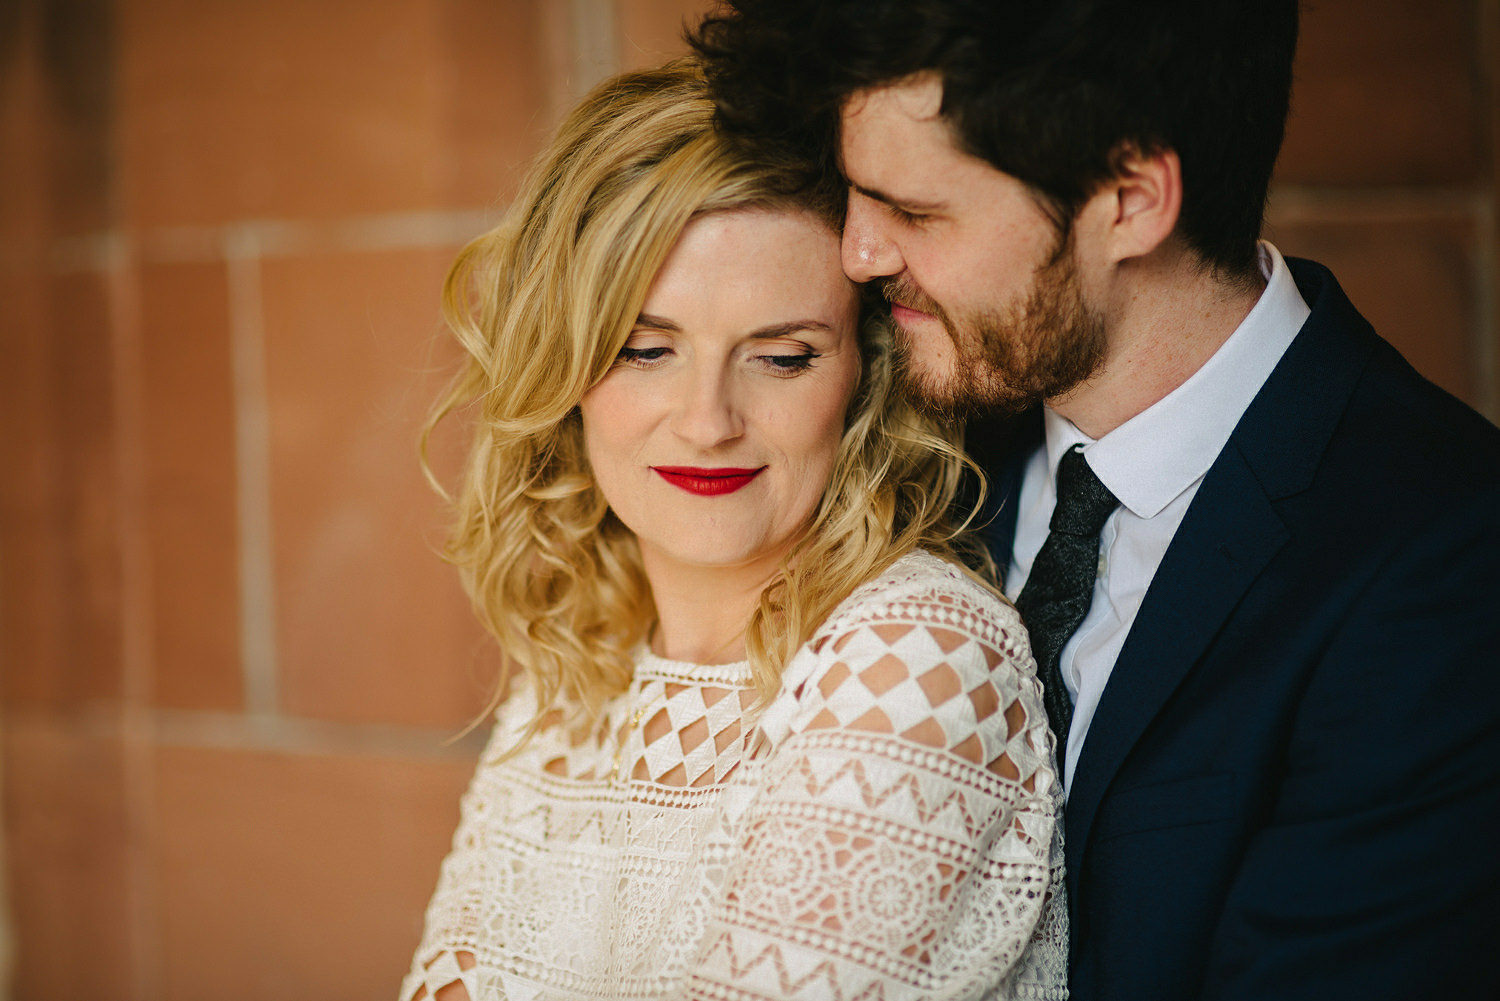 Wedding Photographers Belfast photography Simple tapestry